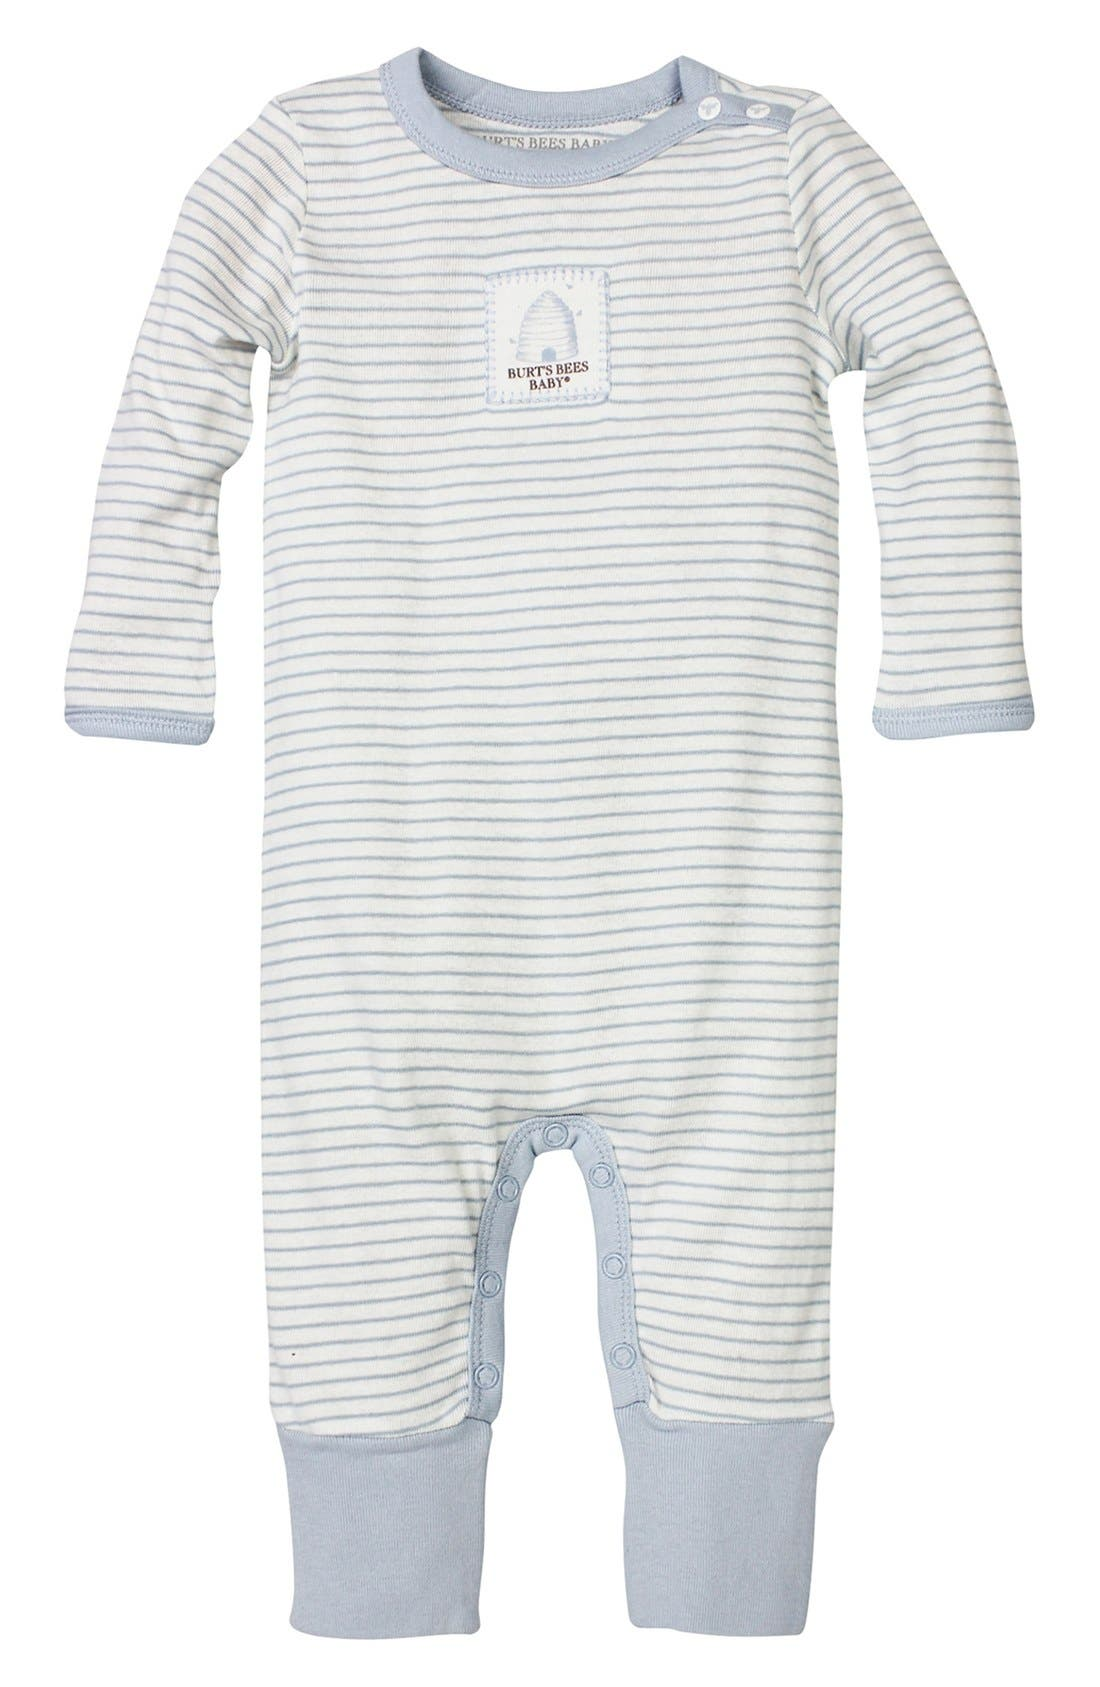 BURT'S BEES BABY, Stripe Organic Cotton Romper, Main thumbnail 1, color, 451